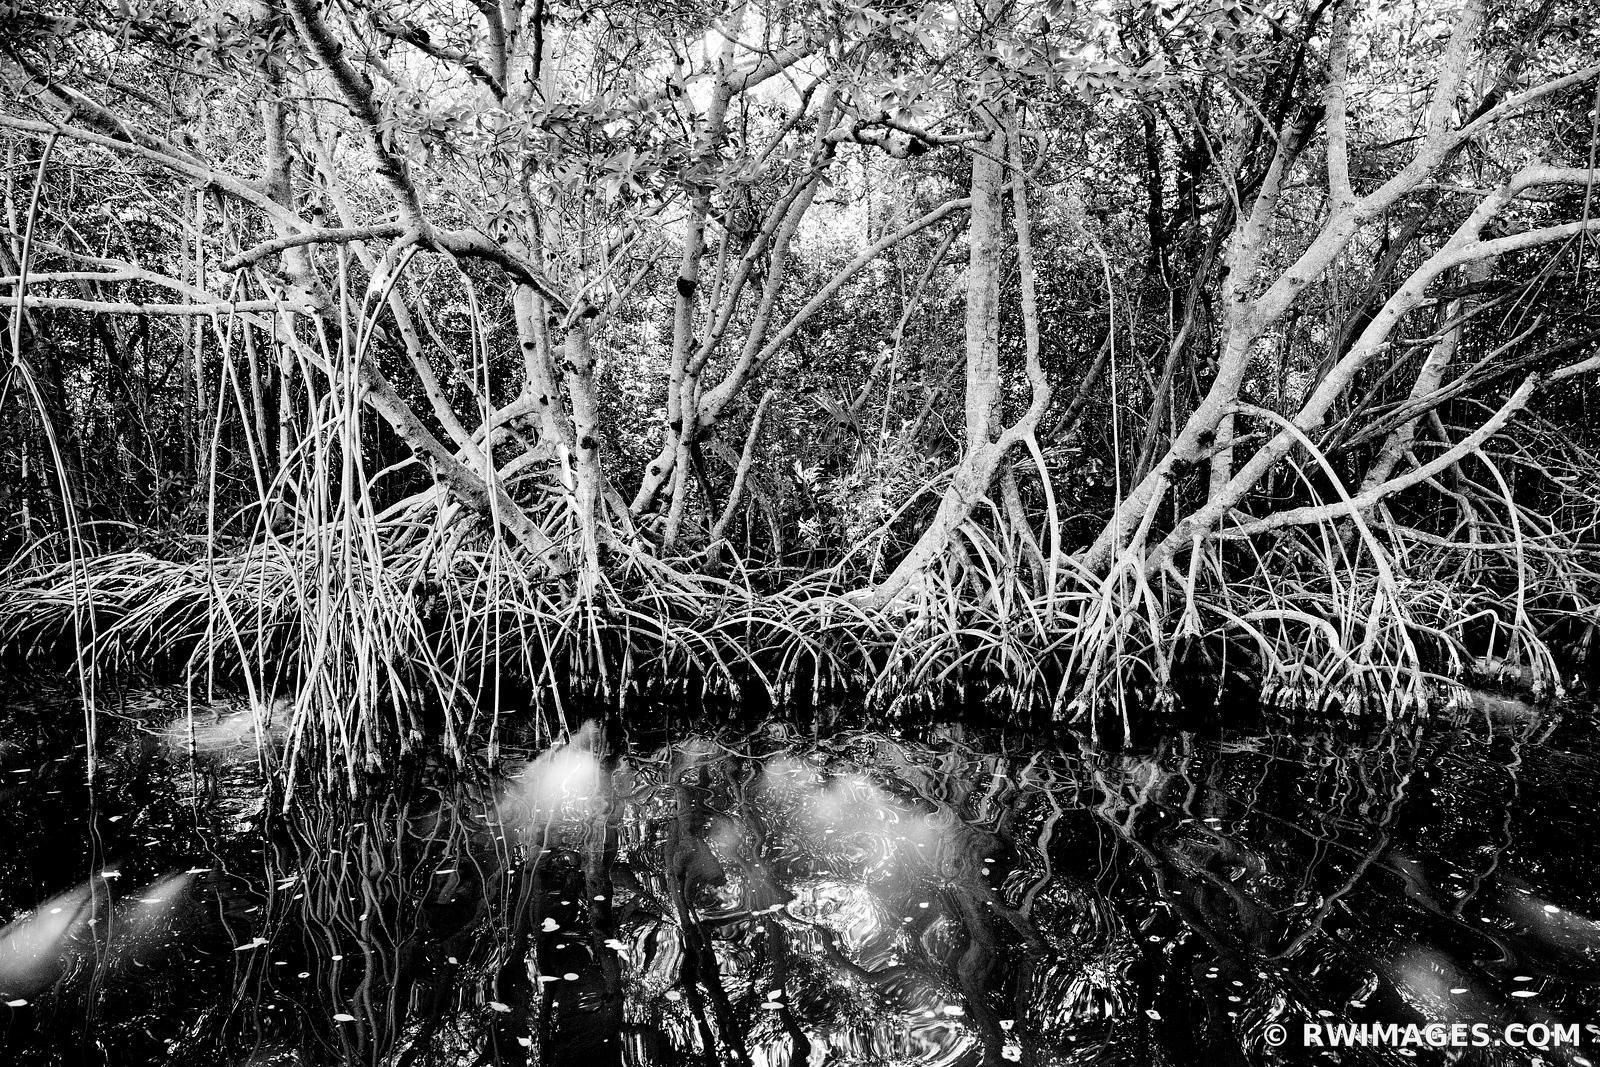 MANGROVE TREES EVERGLADES NATIONAL PARK FLORIDA BLACK AND WHITE